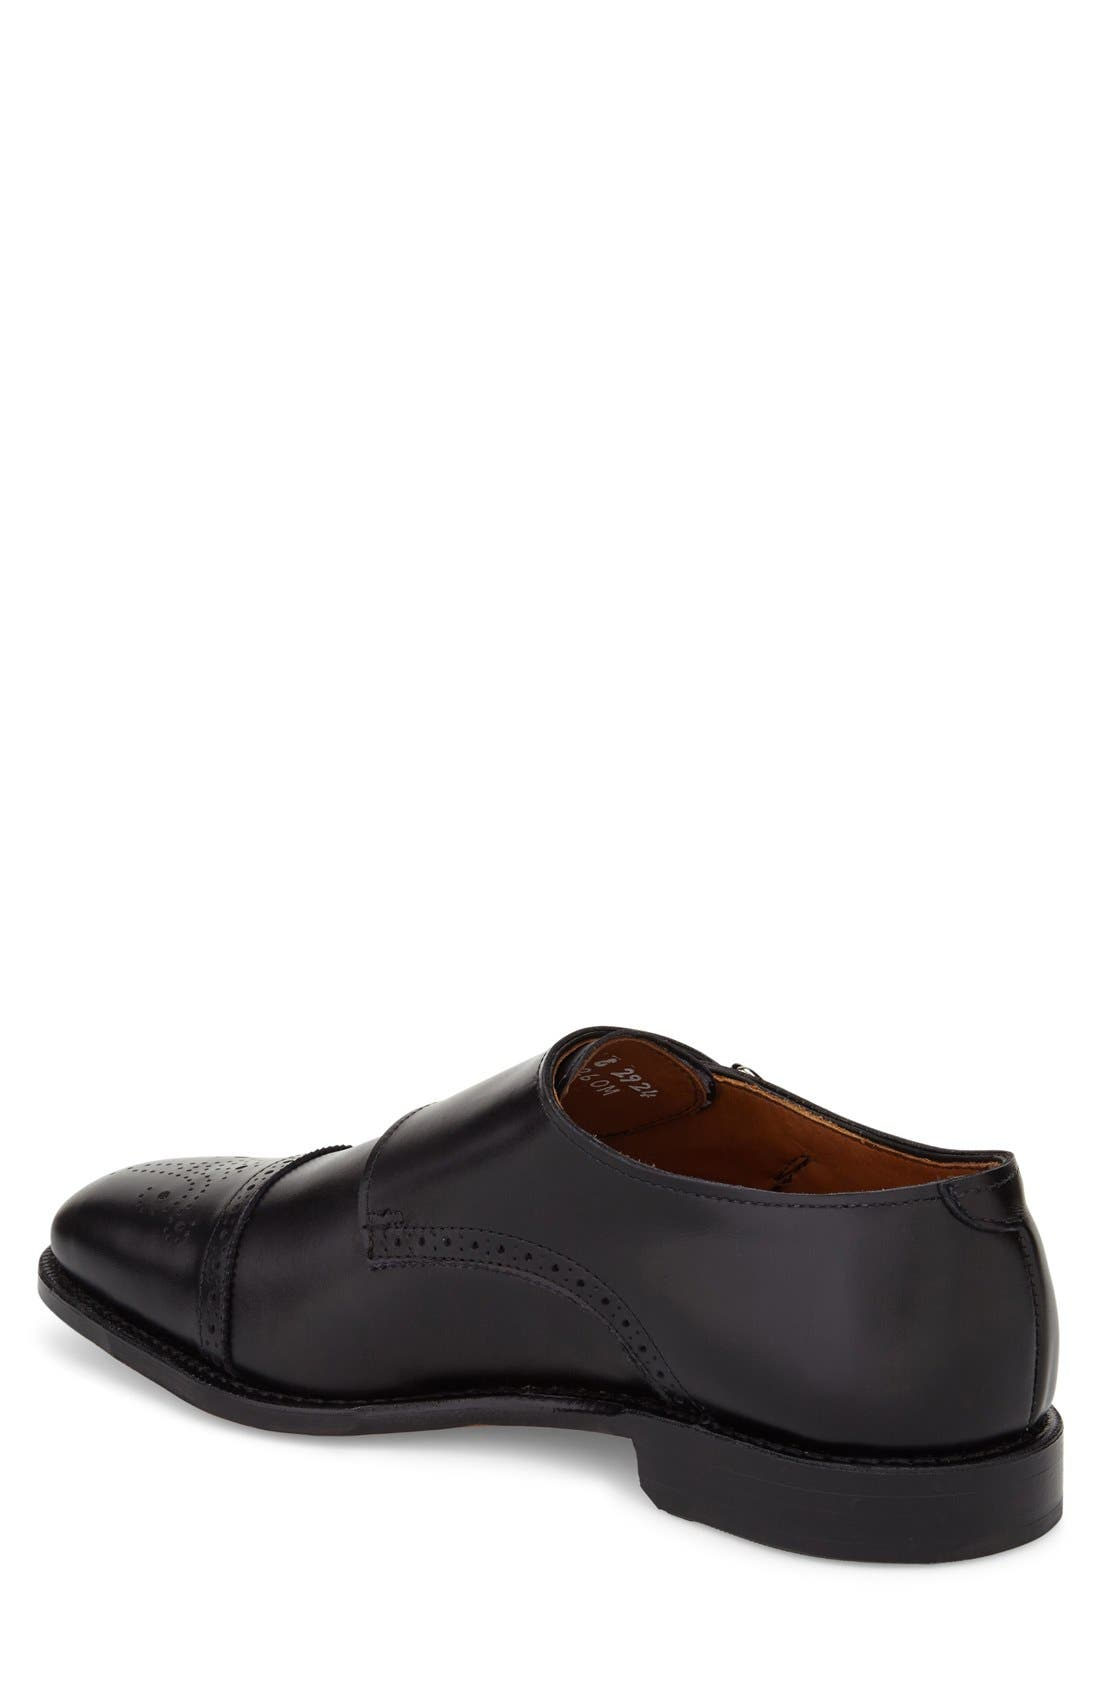 ALLEN EDMONDS, 'St. Johns' Double Monk Strap Shoe, Alternate thumbnail 3, color, BLACK LEATHER